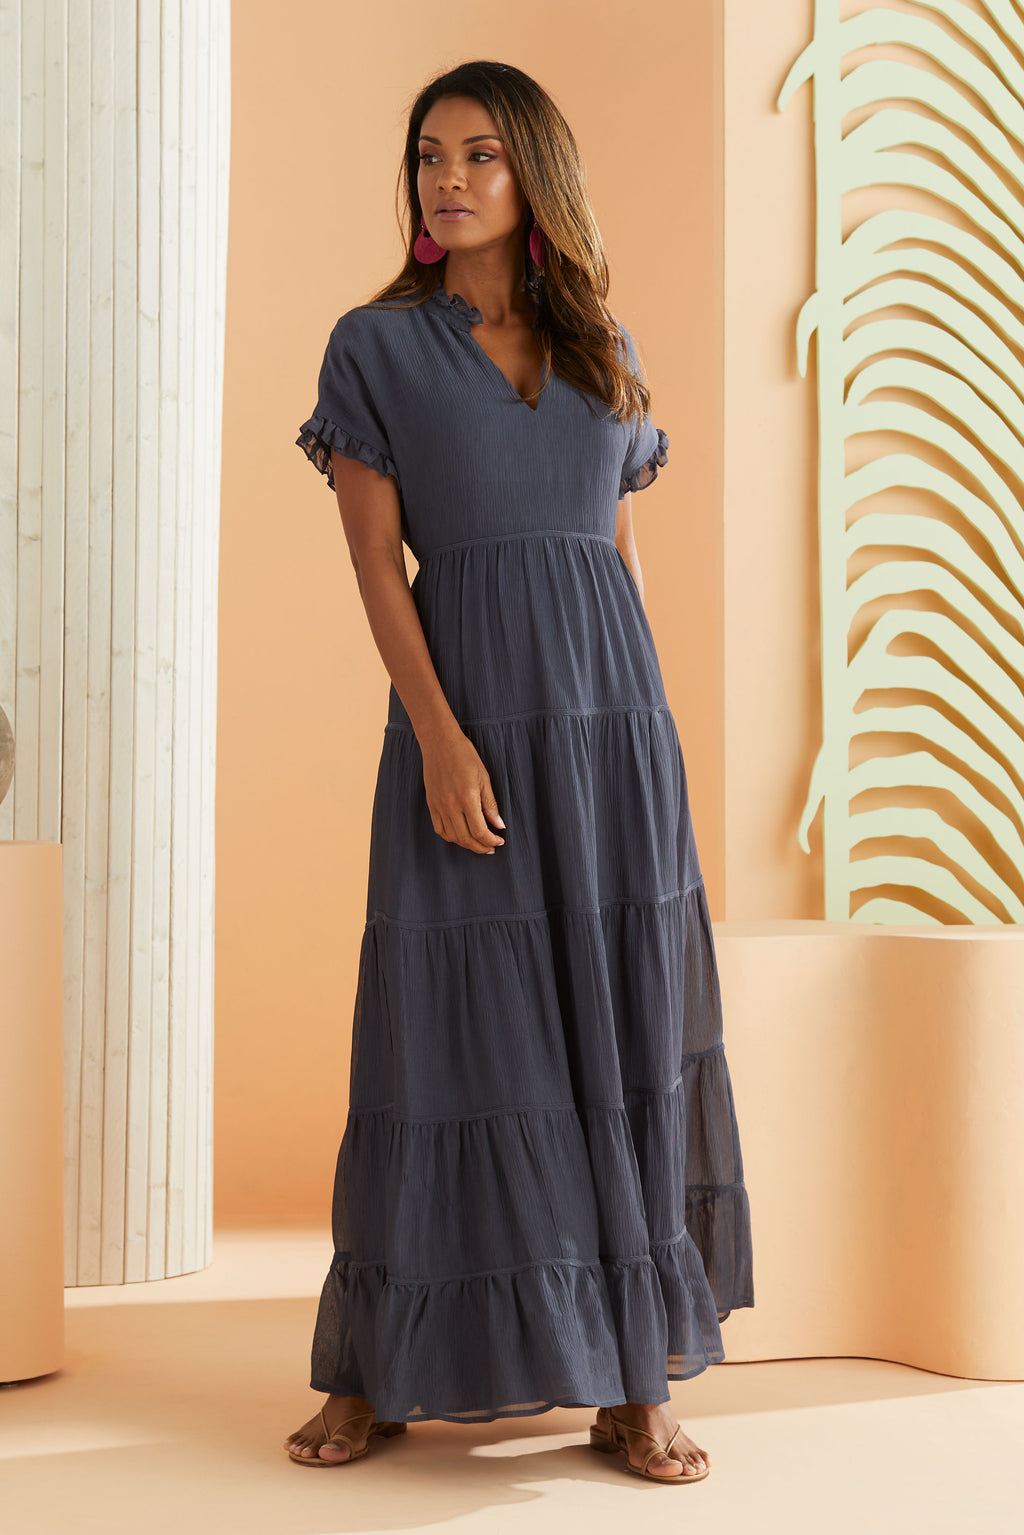 Short sleeve maxi dress in navy